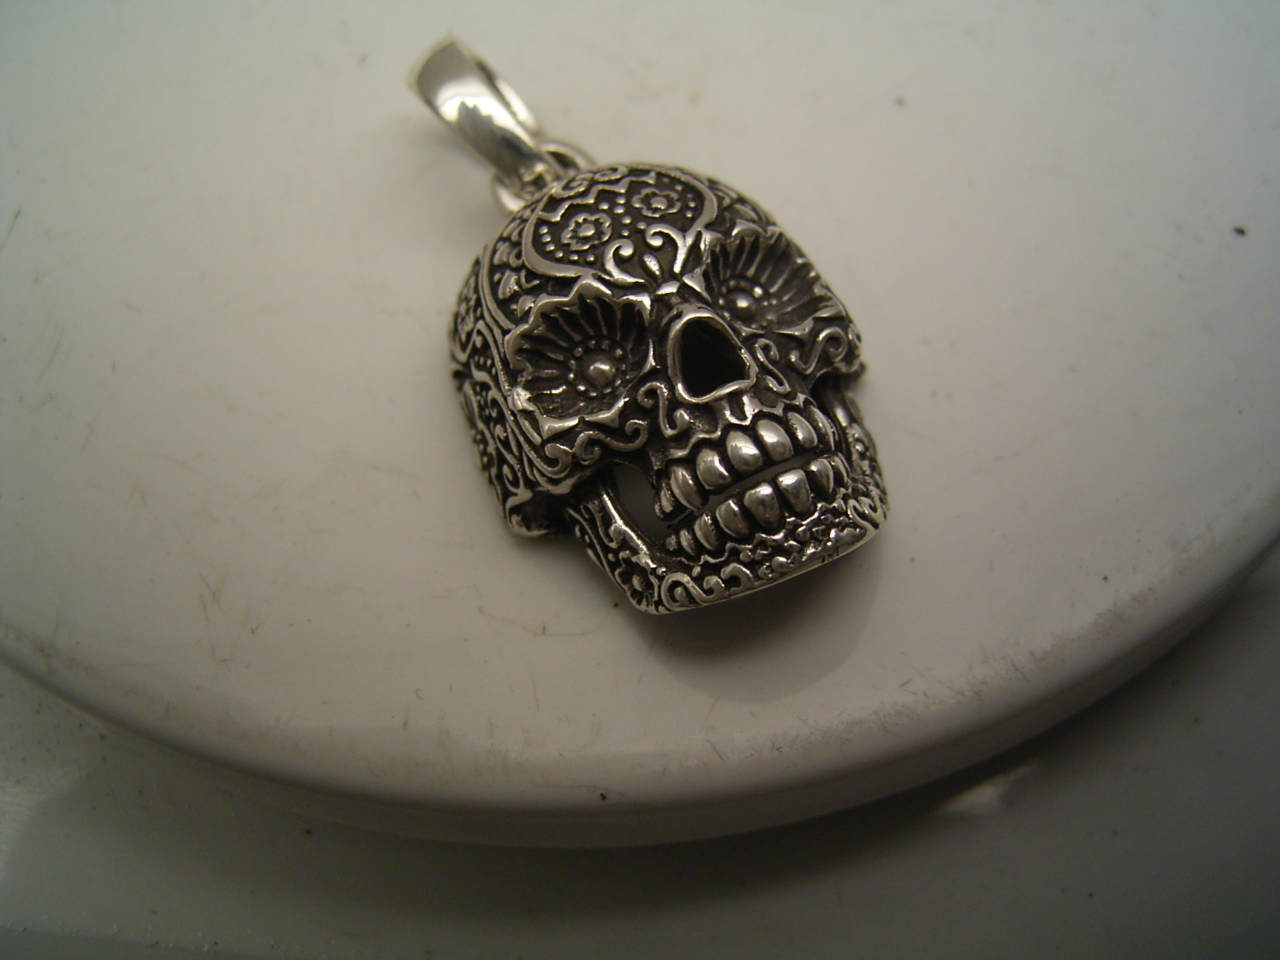 john platinum carter pendant image plated skull necklaces jewellery women platinumsugar greed simon sugar